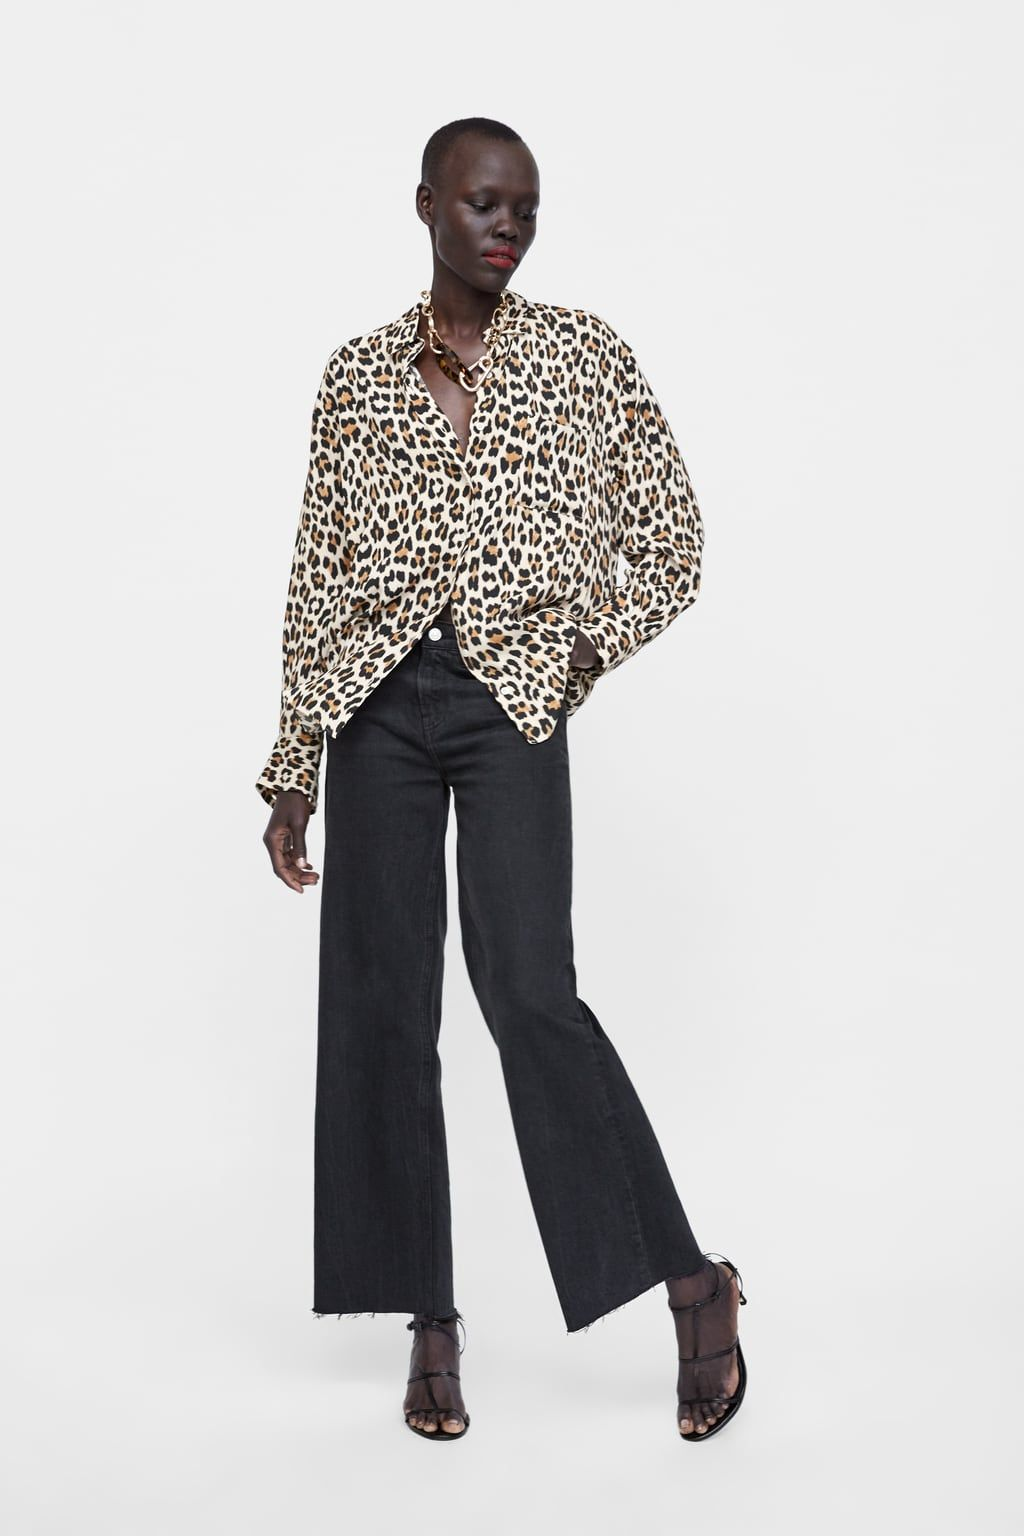 1efa0280a1d3 Leopard print shirt in 2019 | My style | Animal print shirts ...